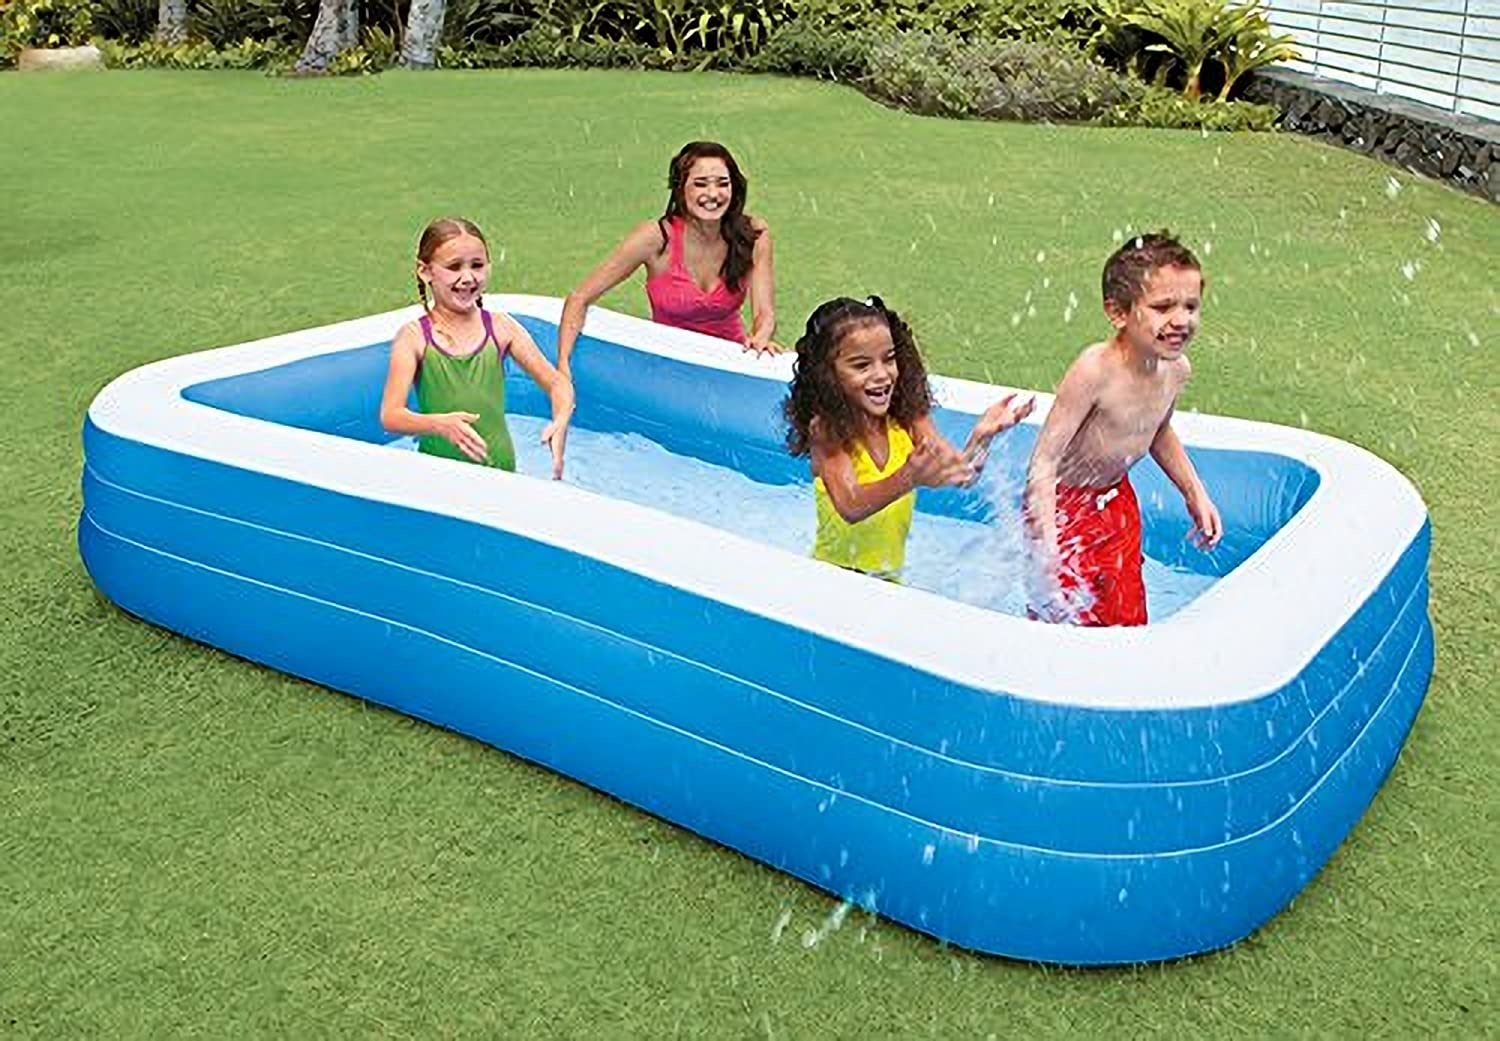 """inflatable swimming pool""的图片搜索结果"